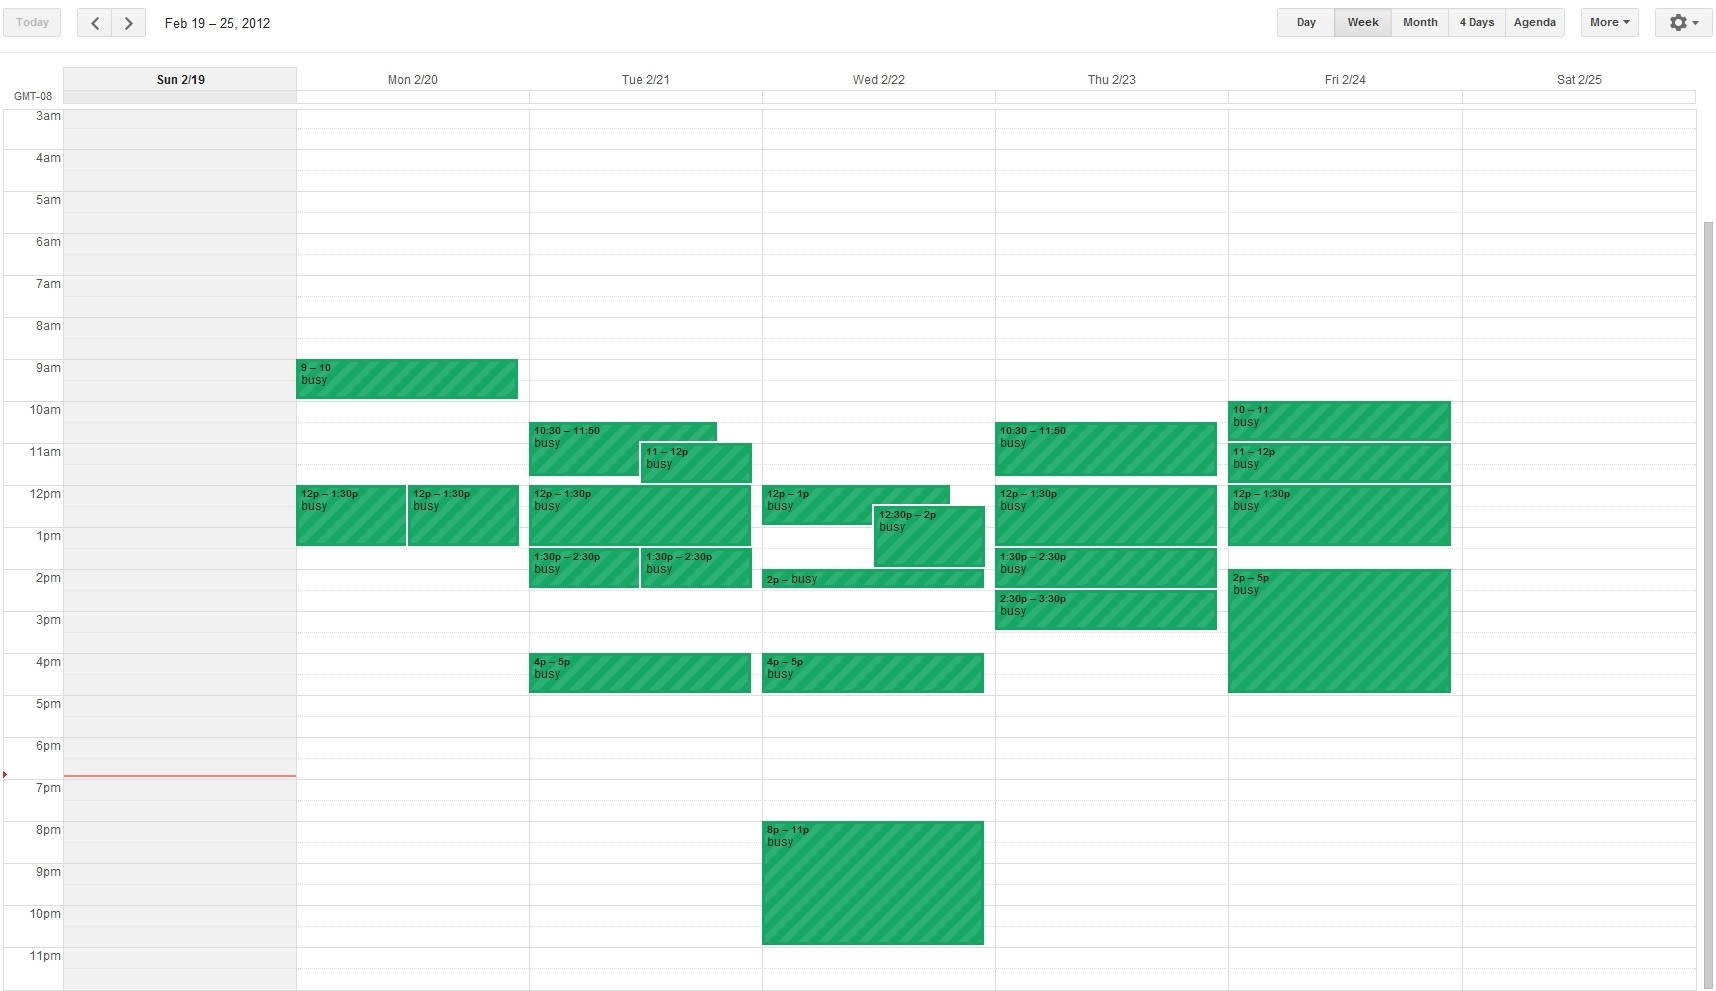 How Can I Create A Weekly Calendar View For An Android